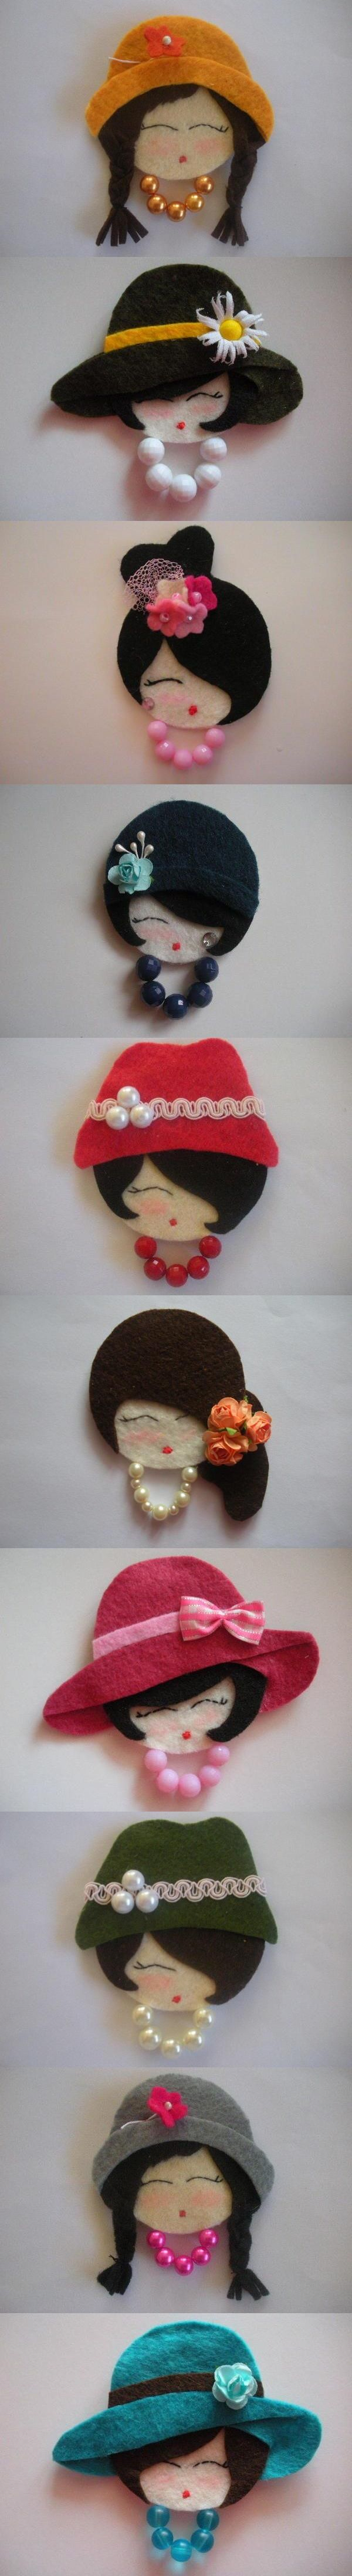 Felt Doll Face Brooches